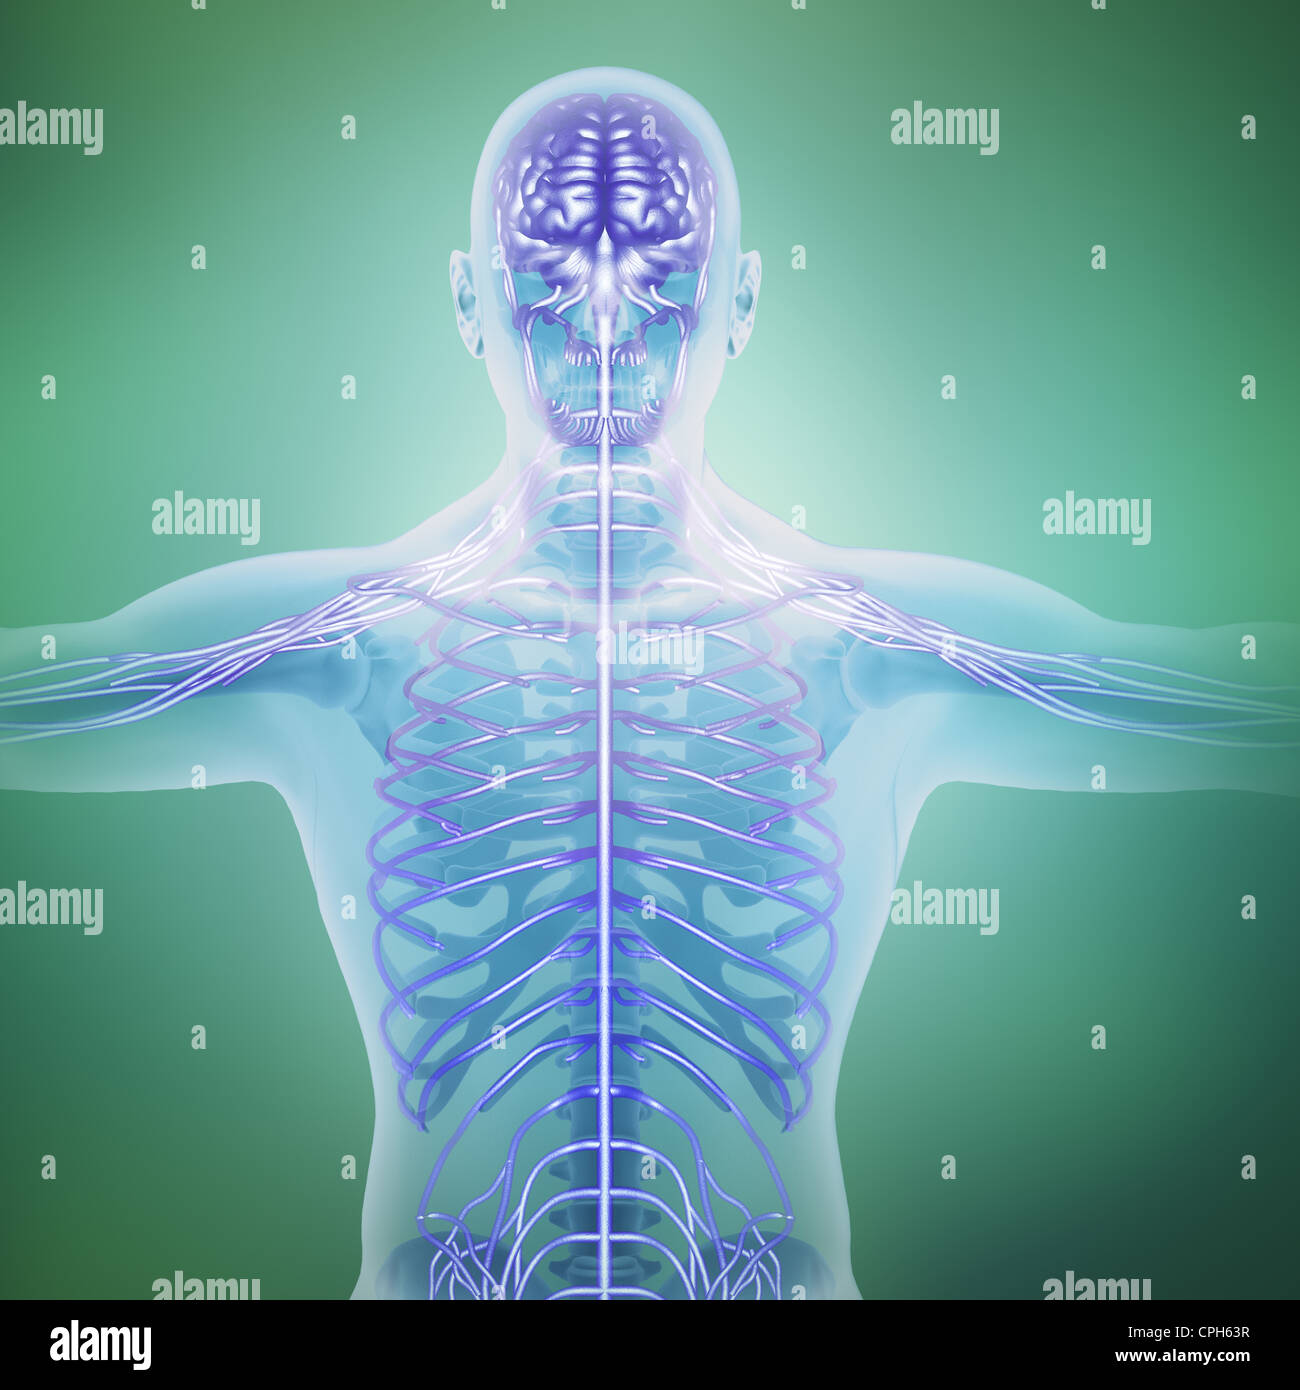 Human anatomy illustration - central nervous system Stock Photo